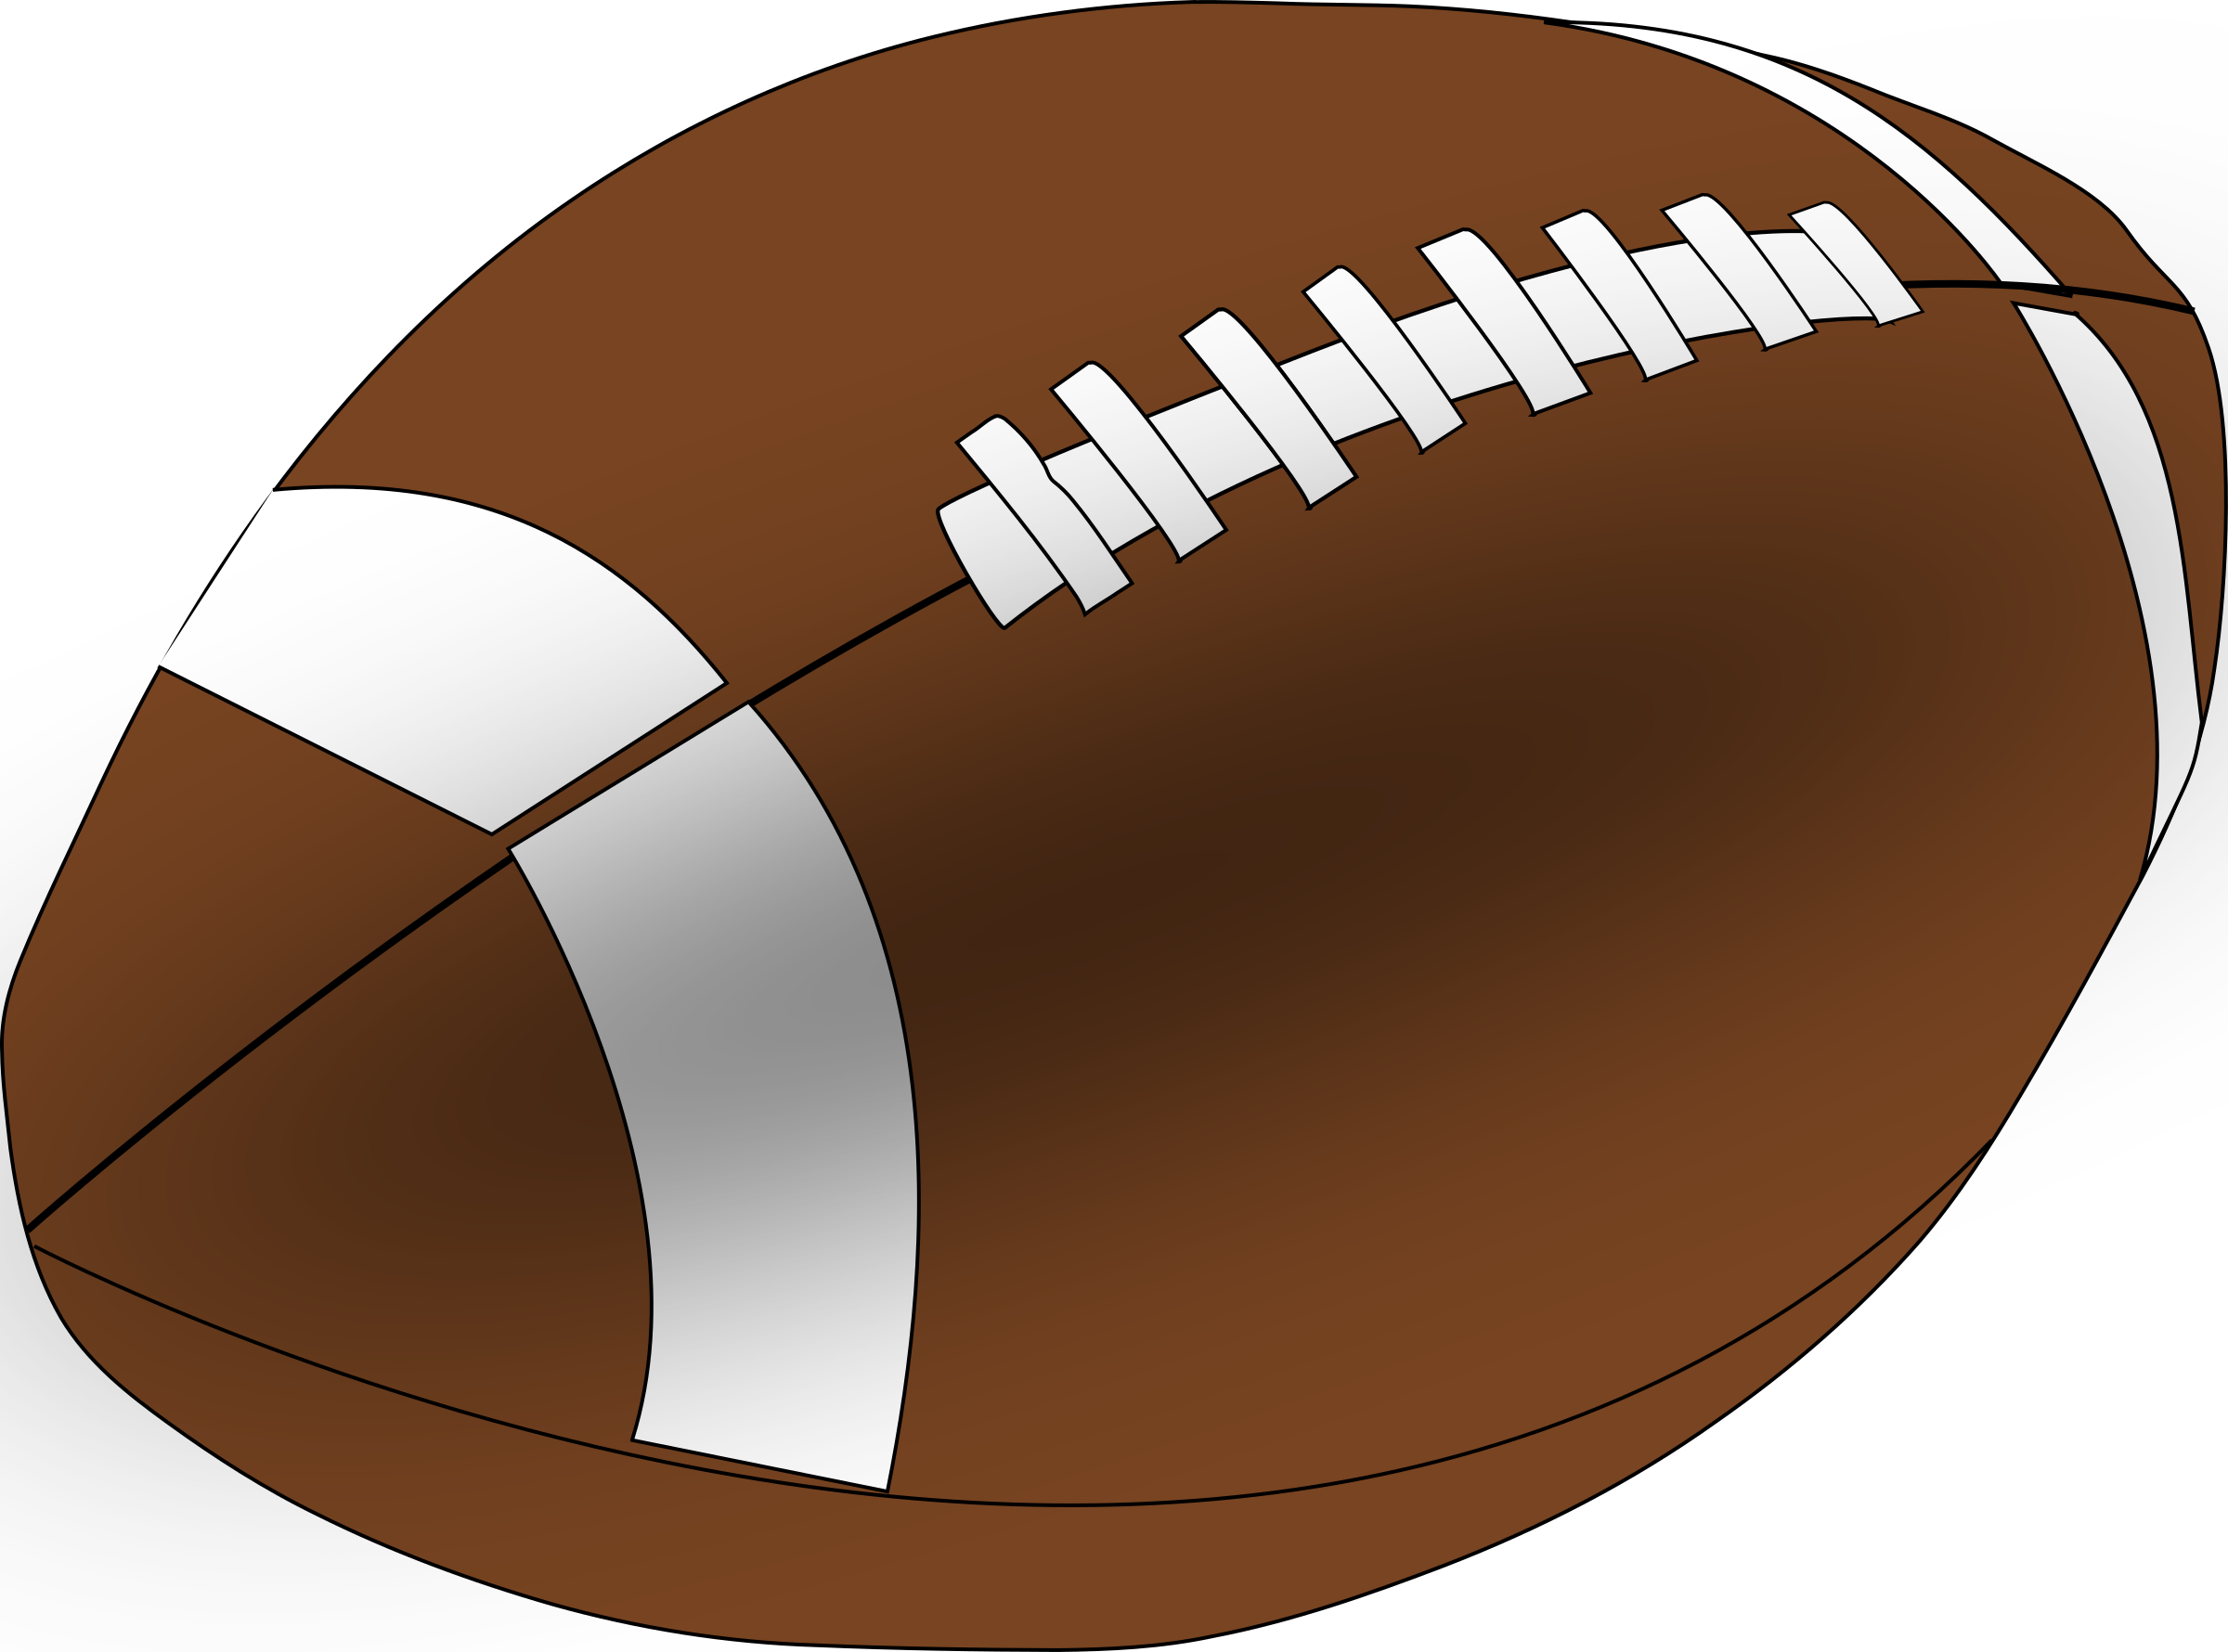 Football clipart thing. American big image png